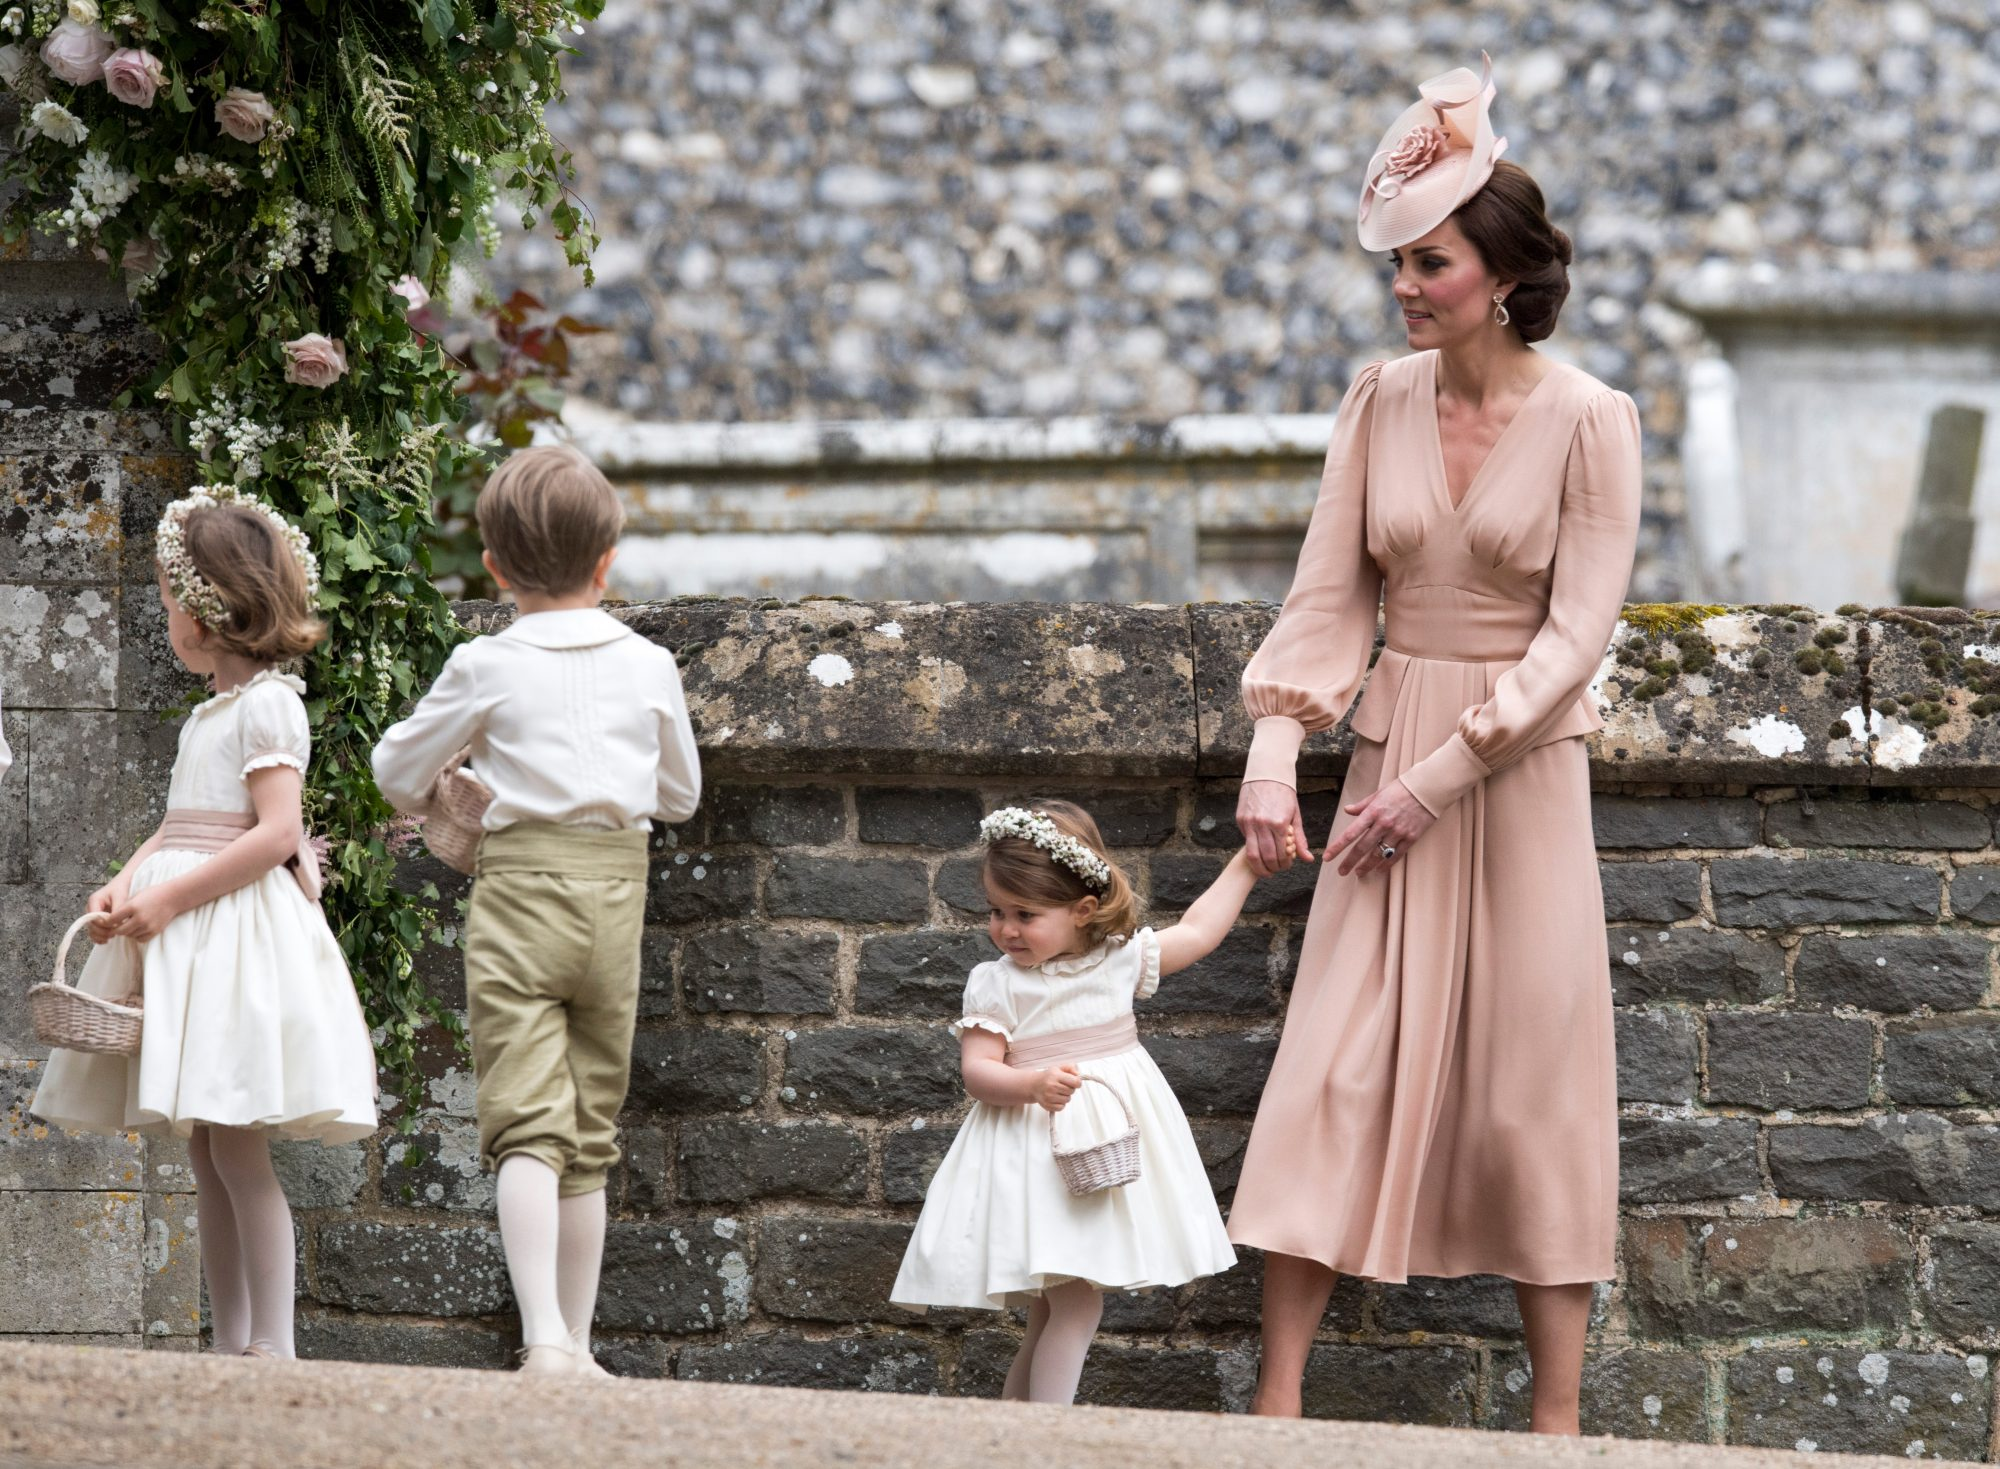 Kates dress for pippas wedding made headlines for a specific kate middleton wedding dress for pippa ombrellifo Gallery